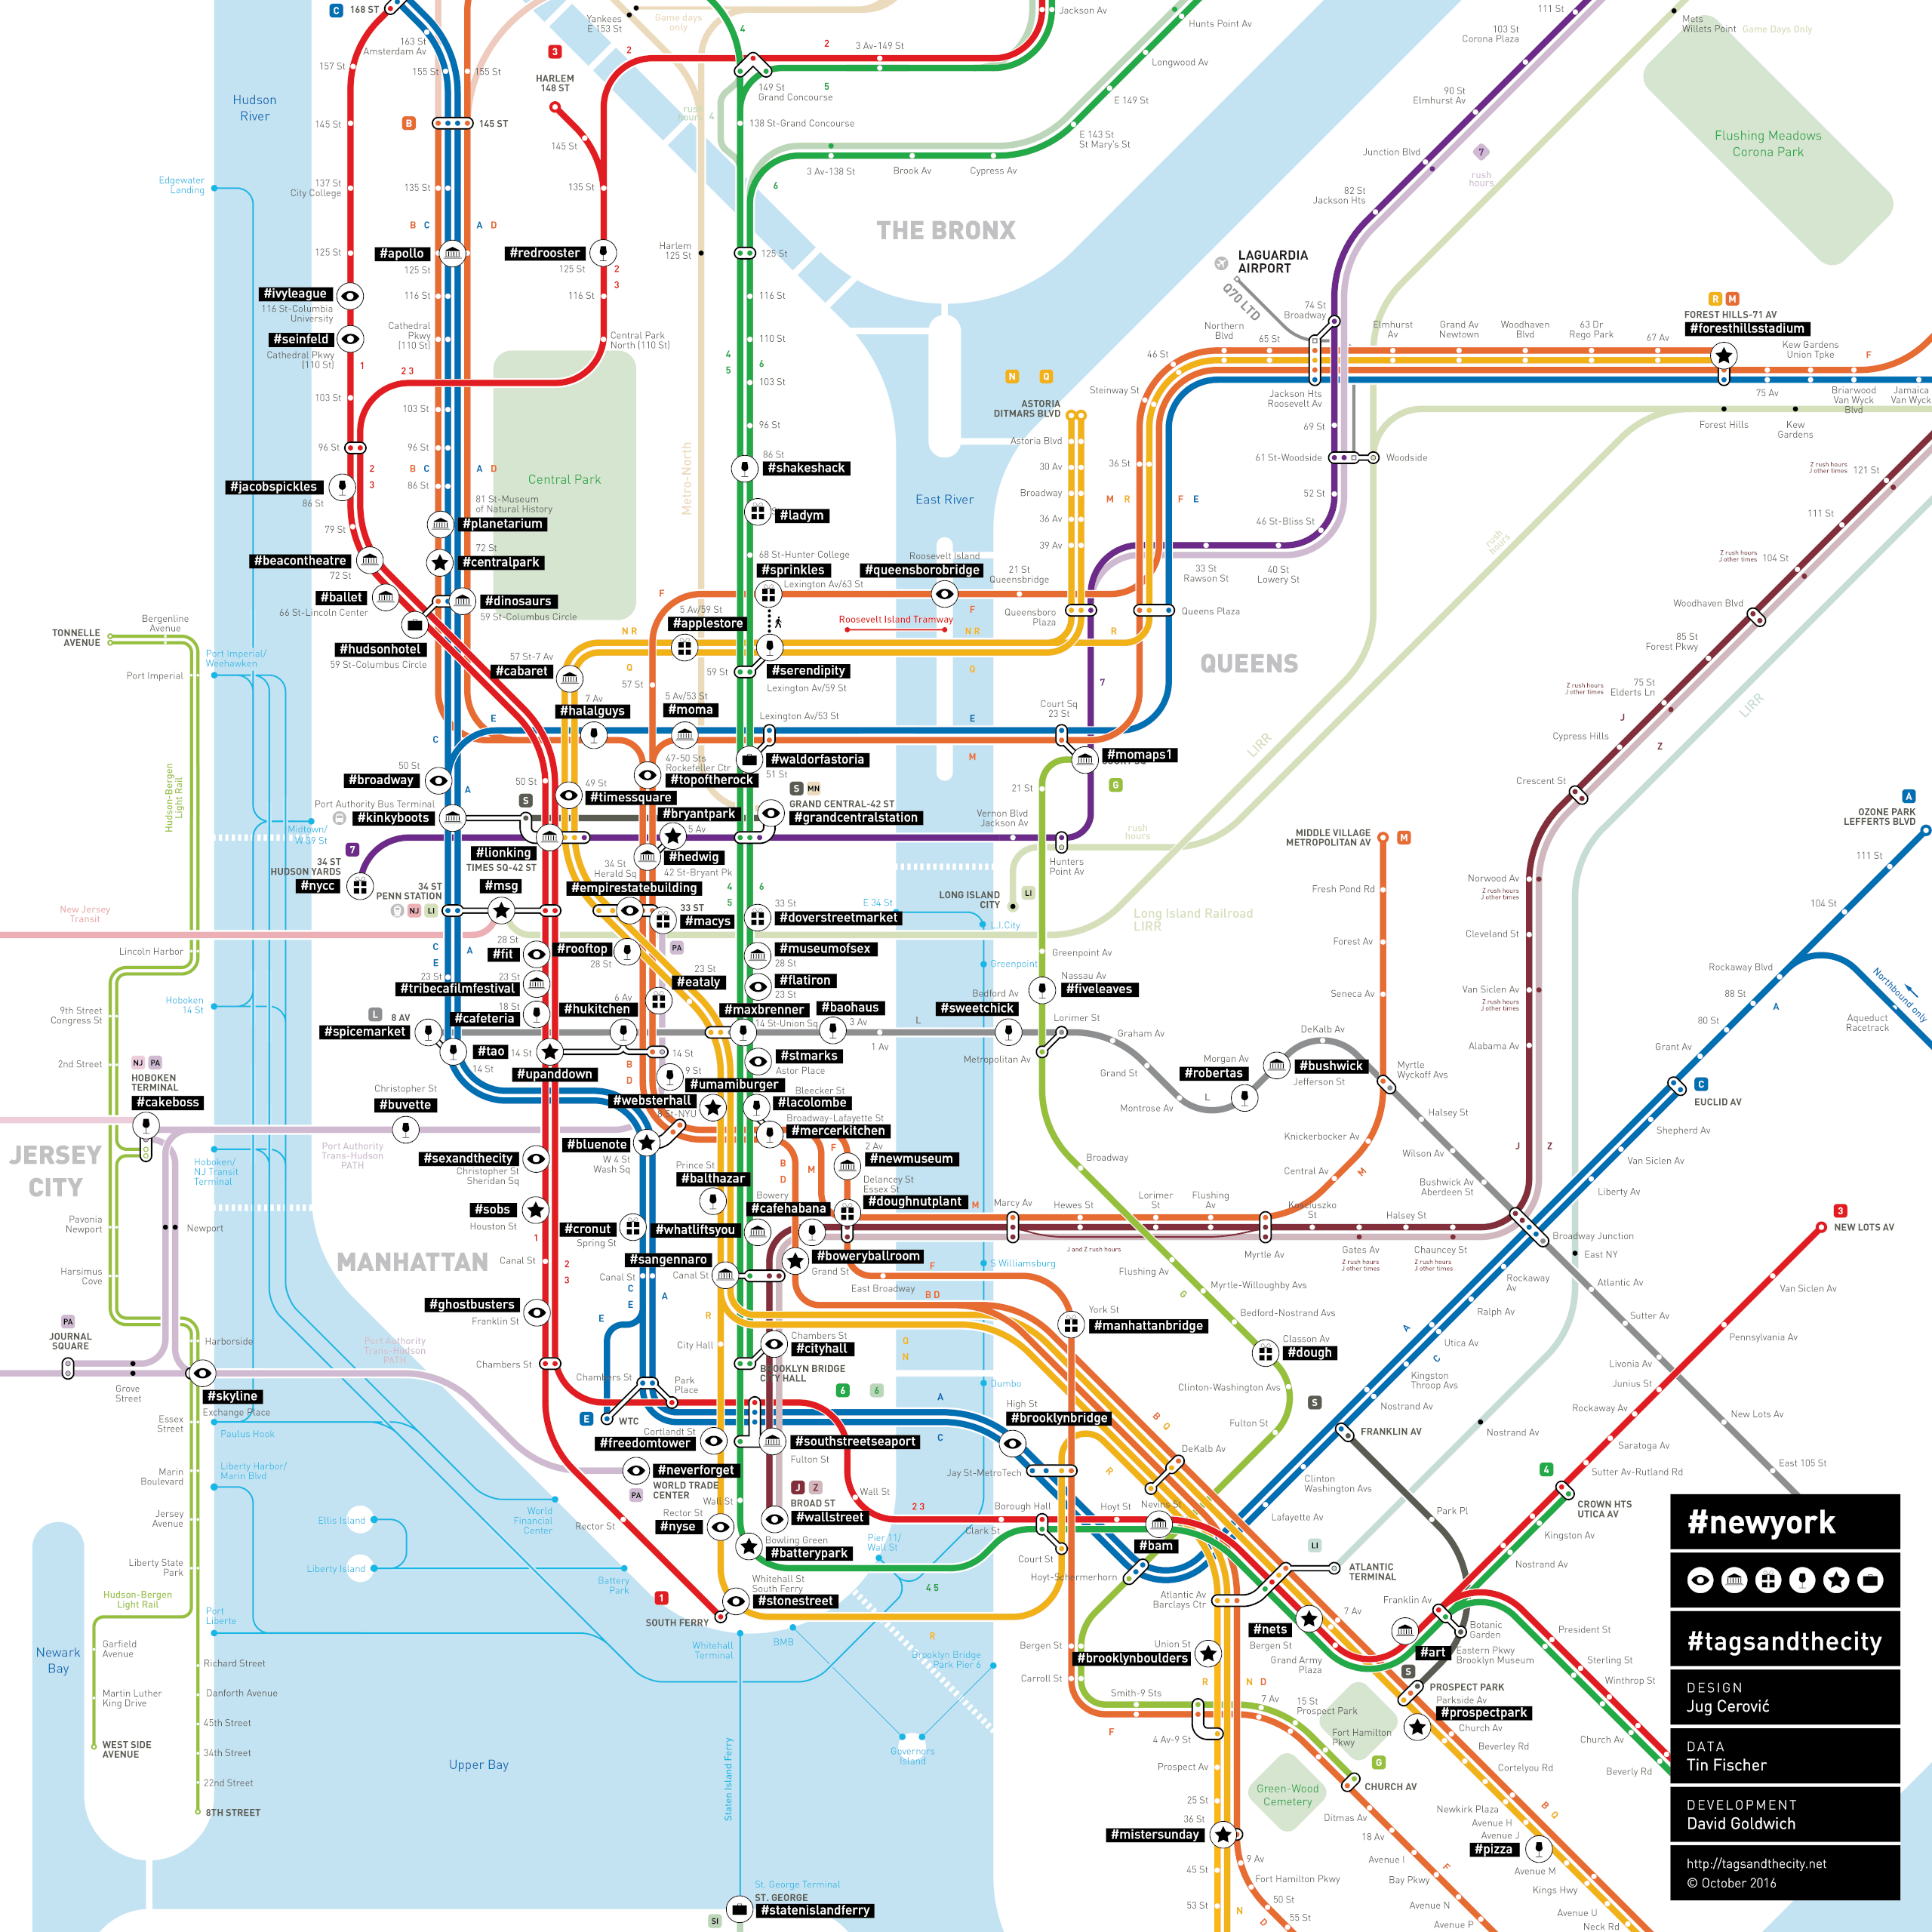 Subway Map D Train.New York City Subway By Most Popular Instagram Hashtags Places I D